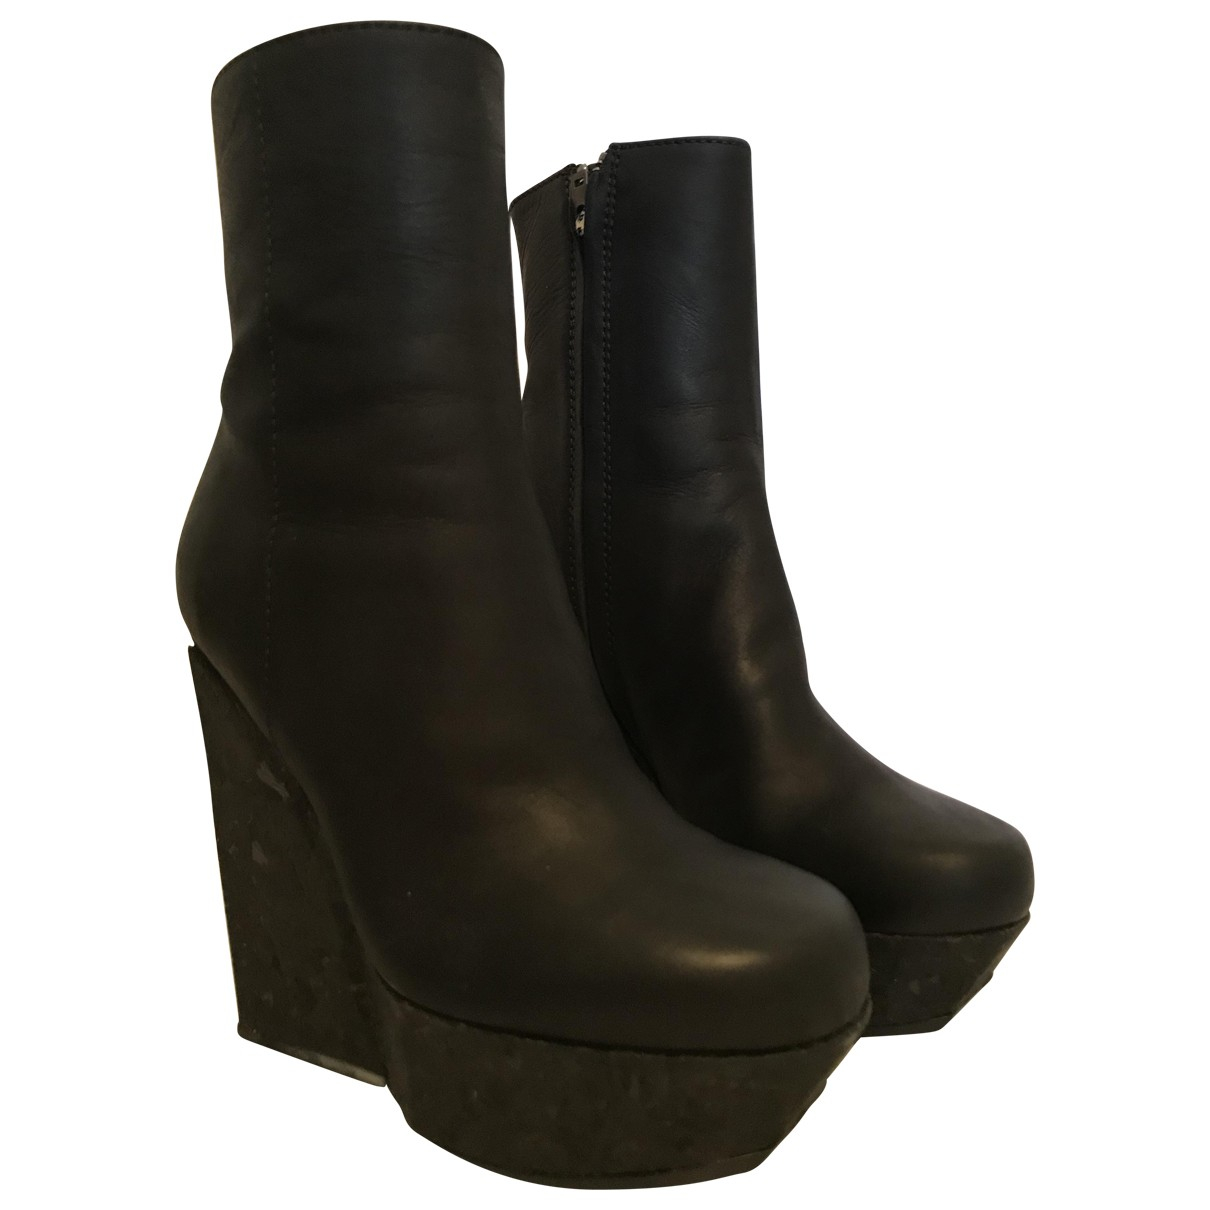 Acne Studios N Black Leather Boots for Women 37 EU